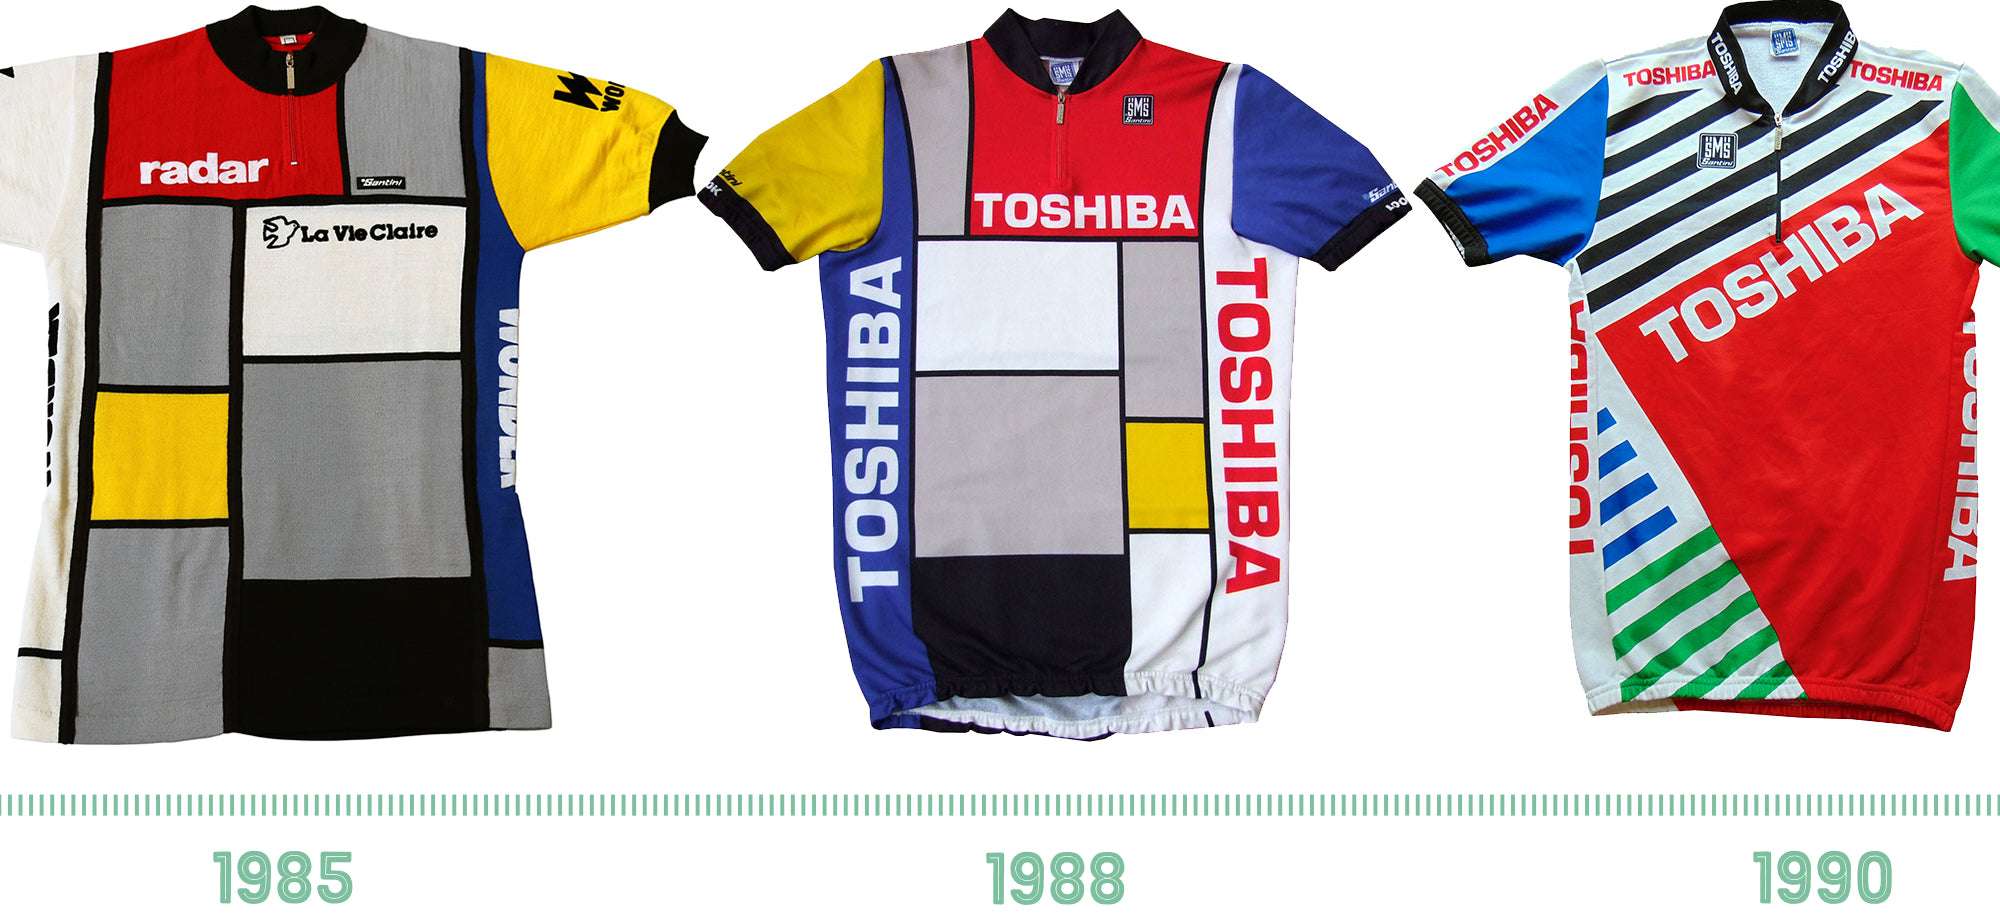 The La Vie Claire jersey of 1985, Toshiba jersey of 1988 and the Toshiba jersey of 1990.